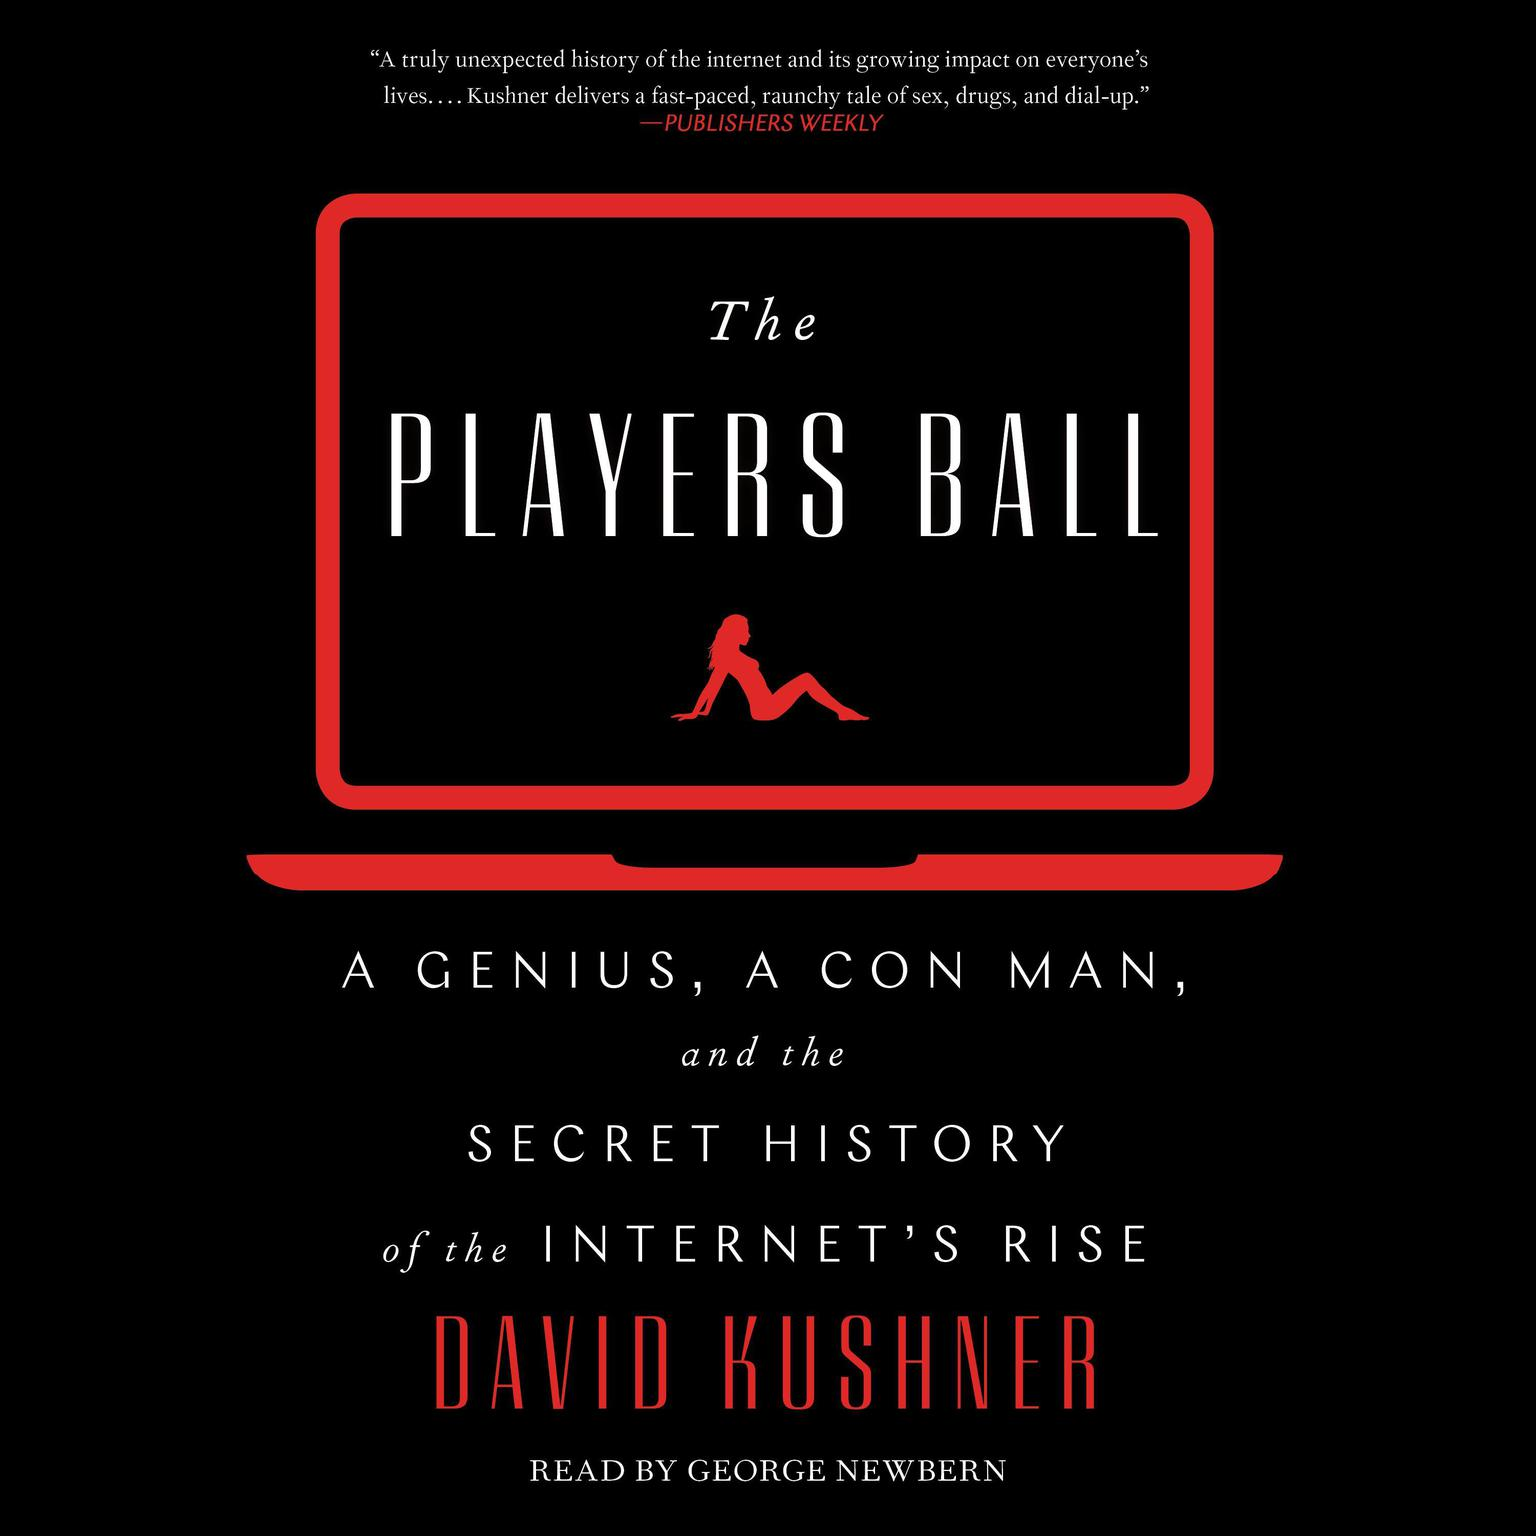 The Players Ball: A Genius, a Con Man, and the Secret History of the Internets Rise Audiobook, by David Kushner